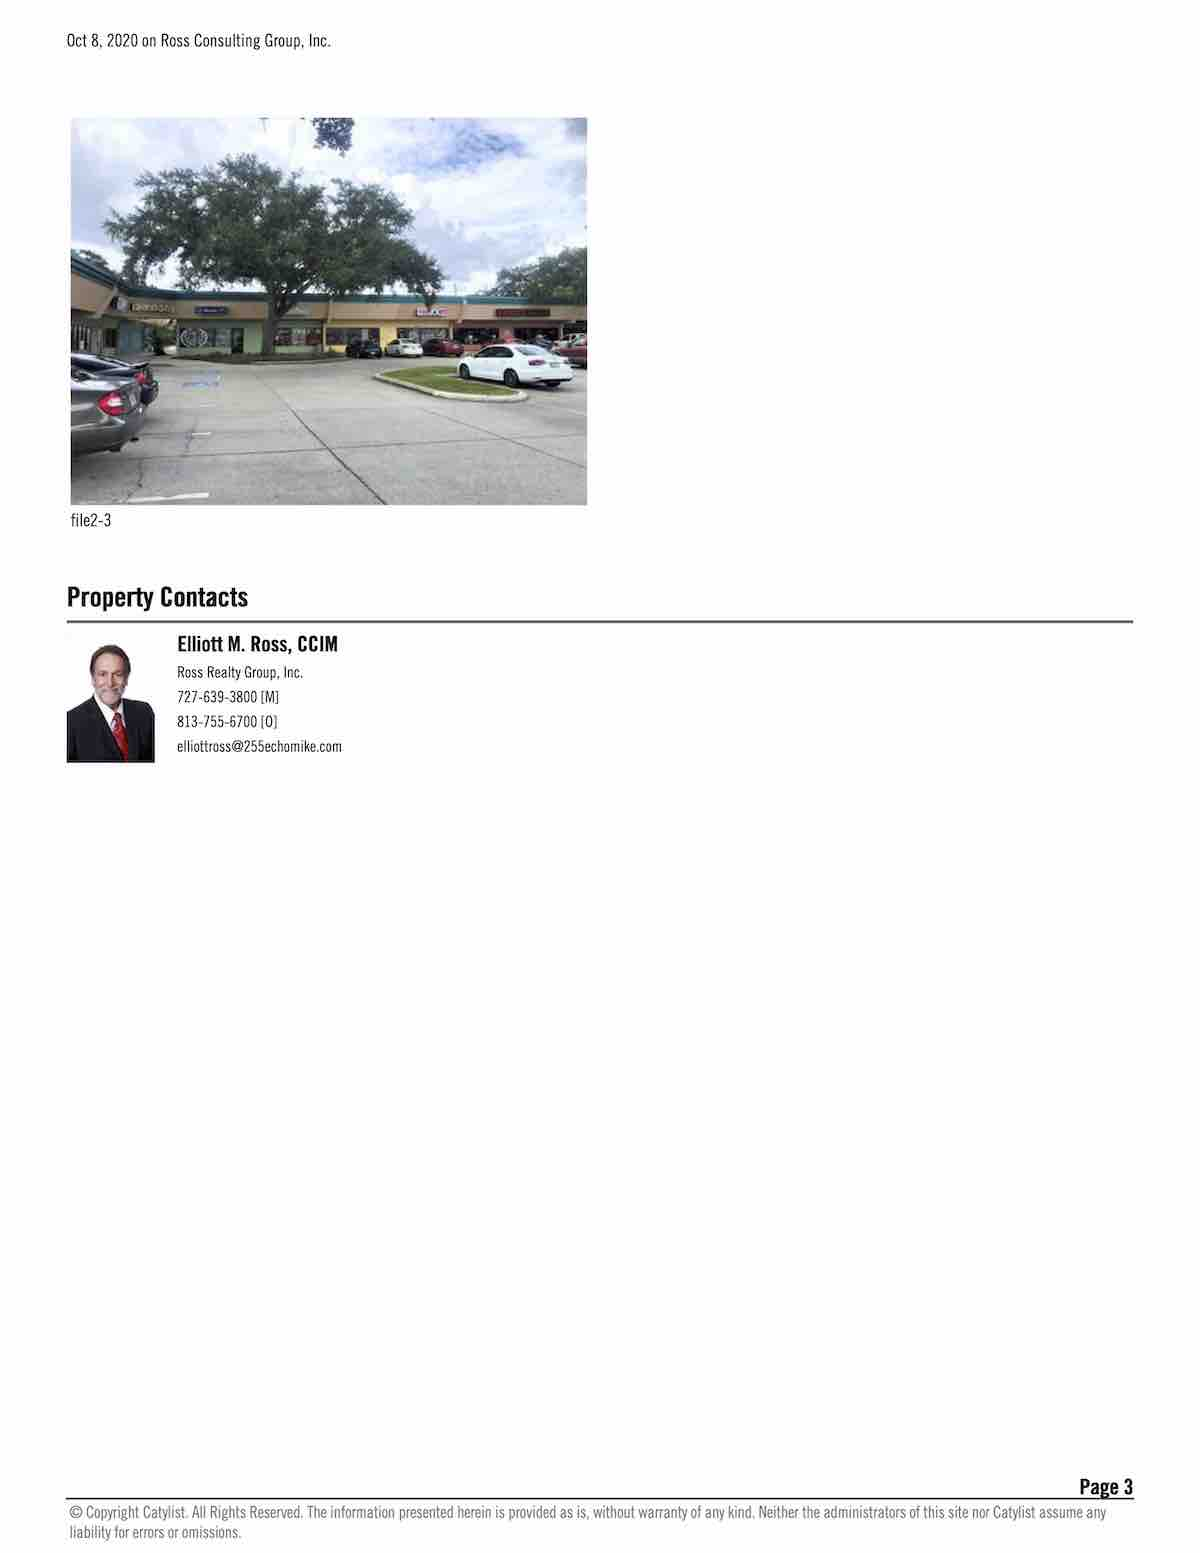 Tampa Commercial Real Estate - FOR LEASE - Hampton Plaza - 2790 Gulf to Bay Blvd, Clearwater, FL 33759 P3